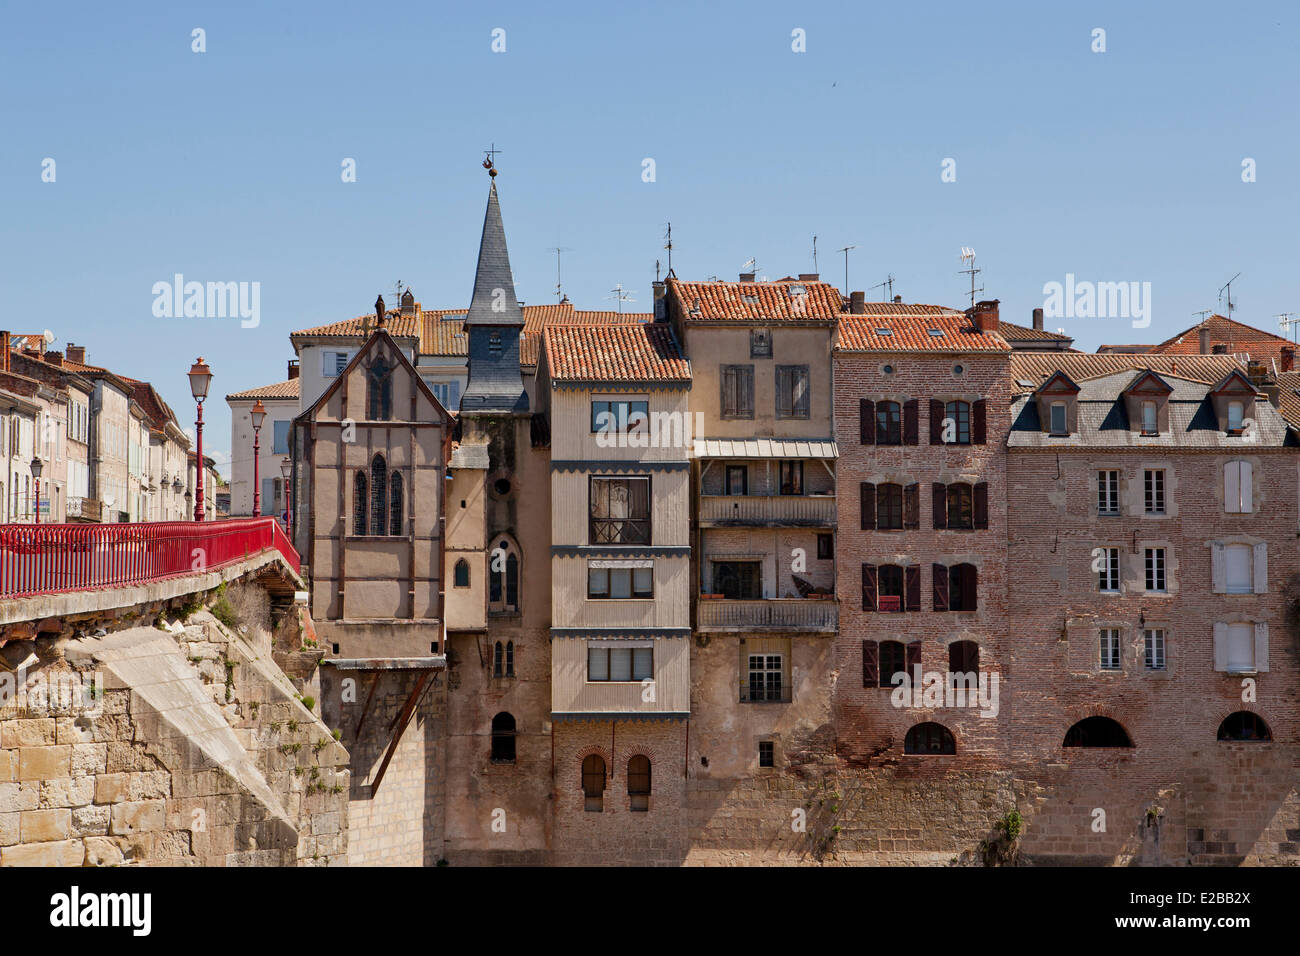 france lot et garonne villeneuve sur lot the bastide medieval stock photo 70320962 alamy. Black Bedroom Furniture Sets. Home Design Ideas